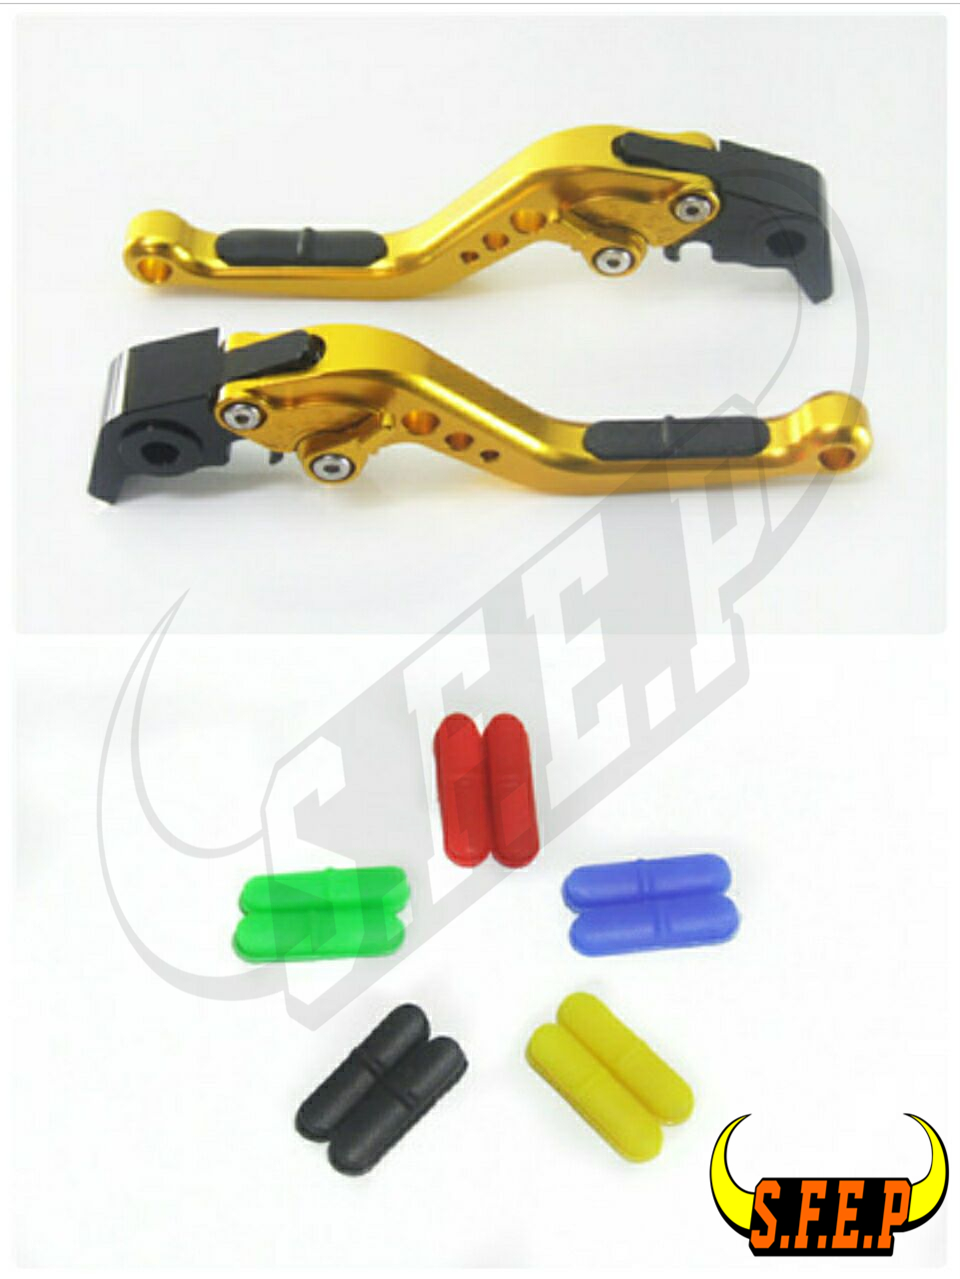 CNC Adjustable Motorcycle Brake and Clutch Levers with Anti-Slip For Yamaha R6S EUROPE VERSION 2006-2007 6 colors cnc adjustable motorcycle brake clutch levers for yamaha yzf r6 yzfr6 1999 2004 2005 2016 2017 logo yzf r6 lever